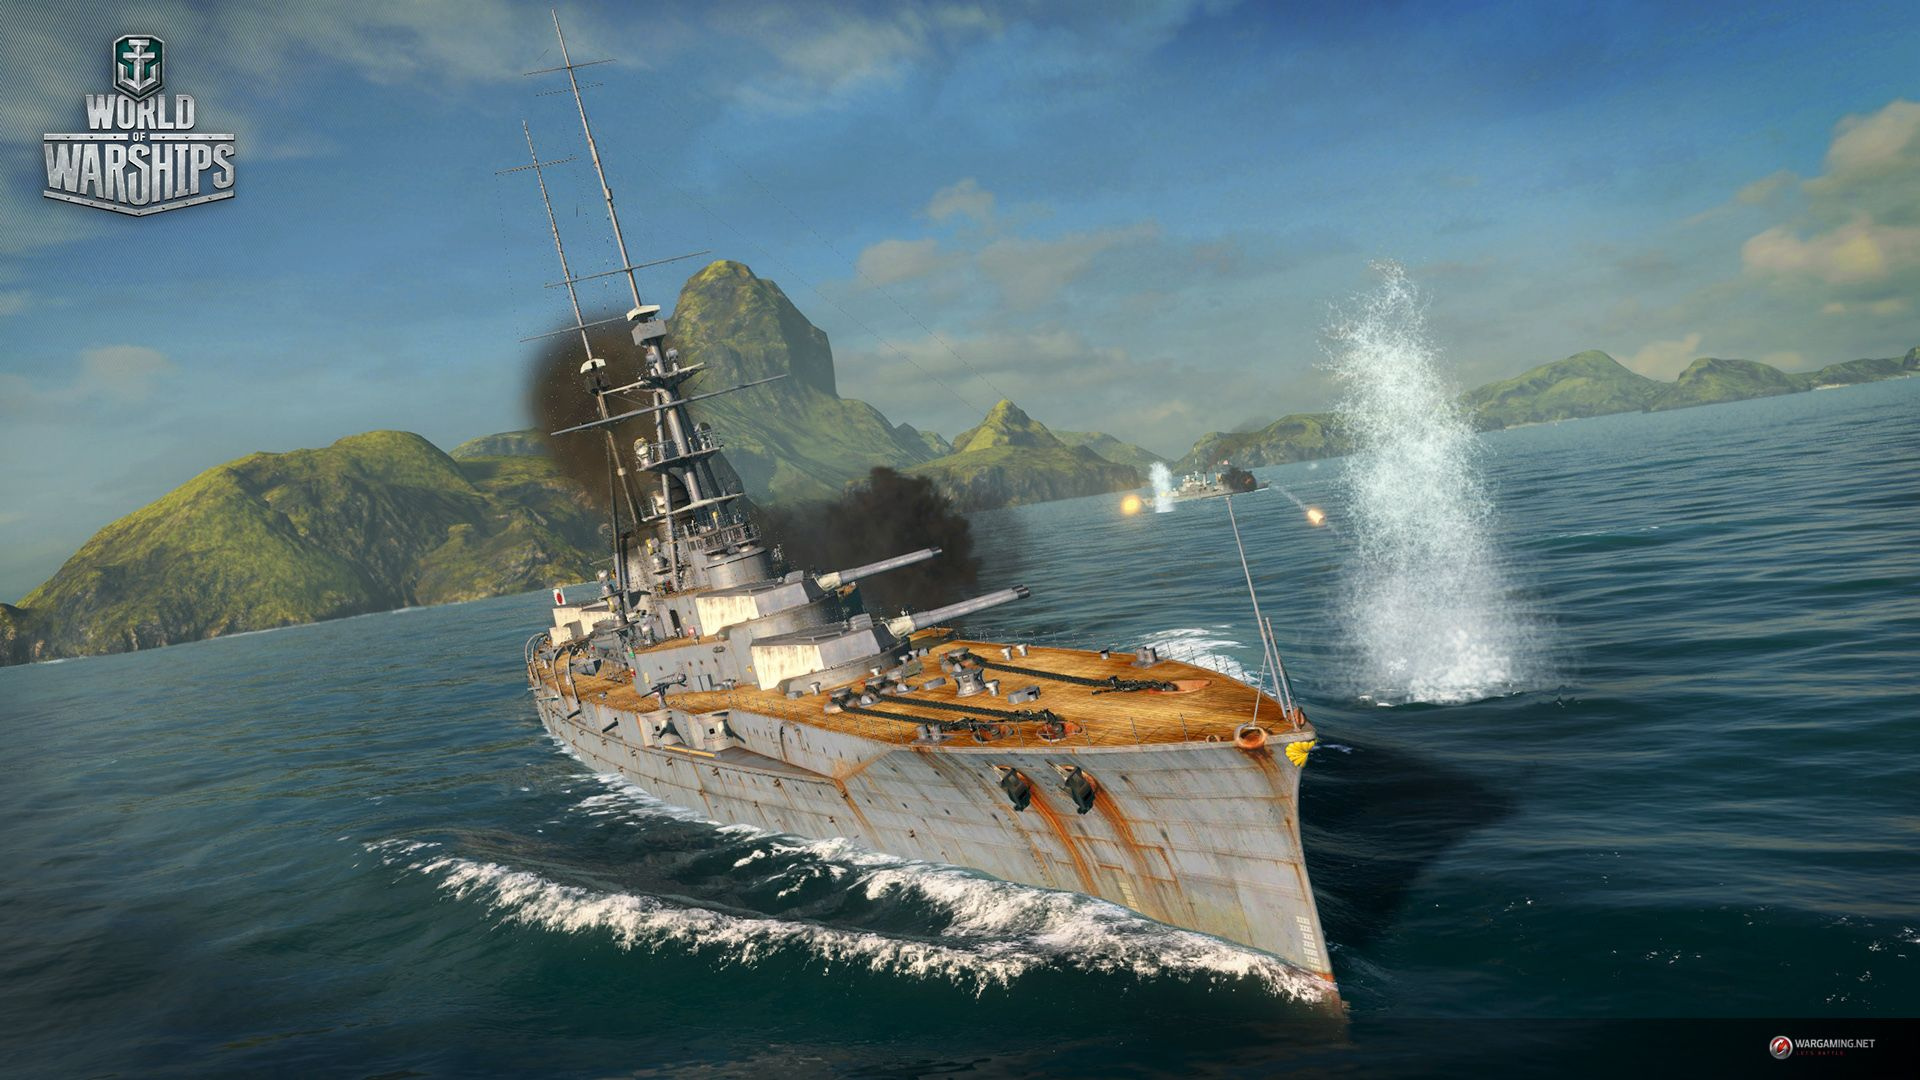 Pin by Joy to Live on WORLD OF TANKS/WARSHIPS | Tank warfare